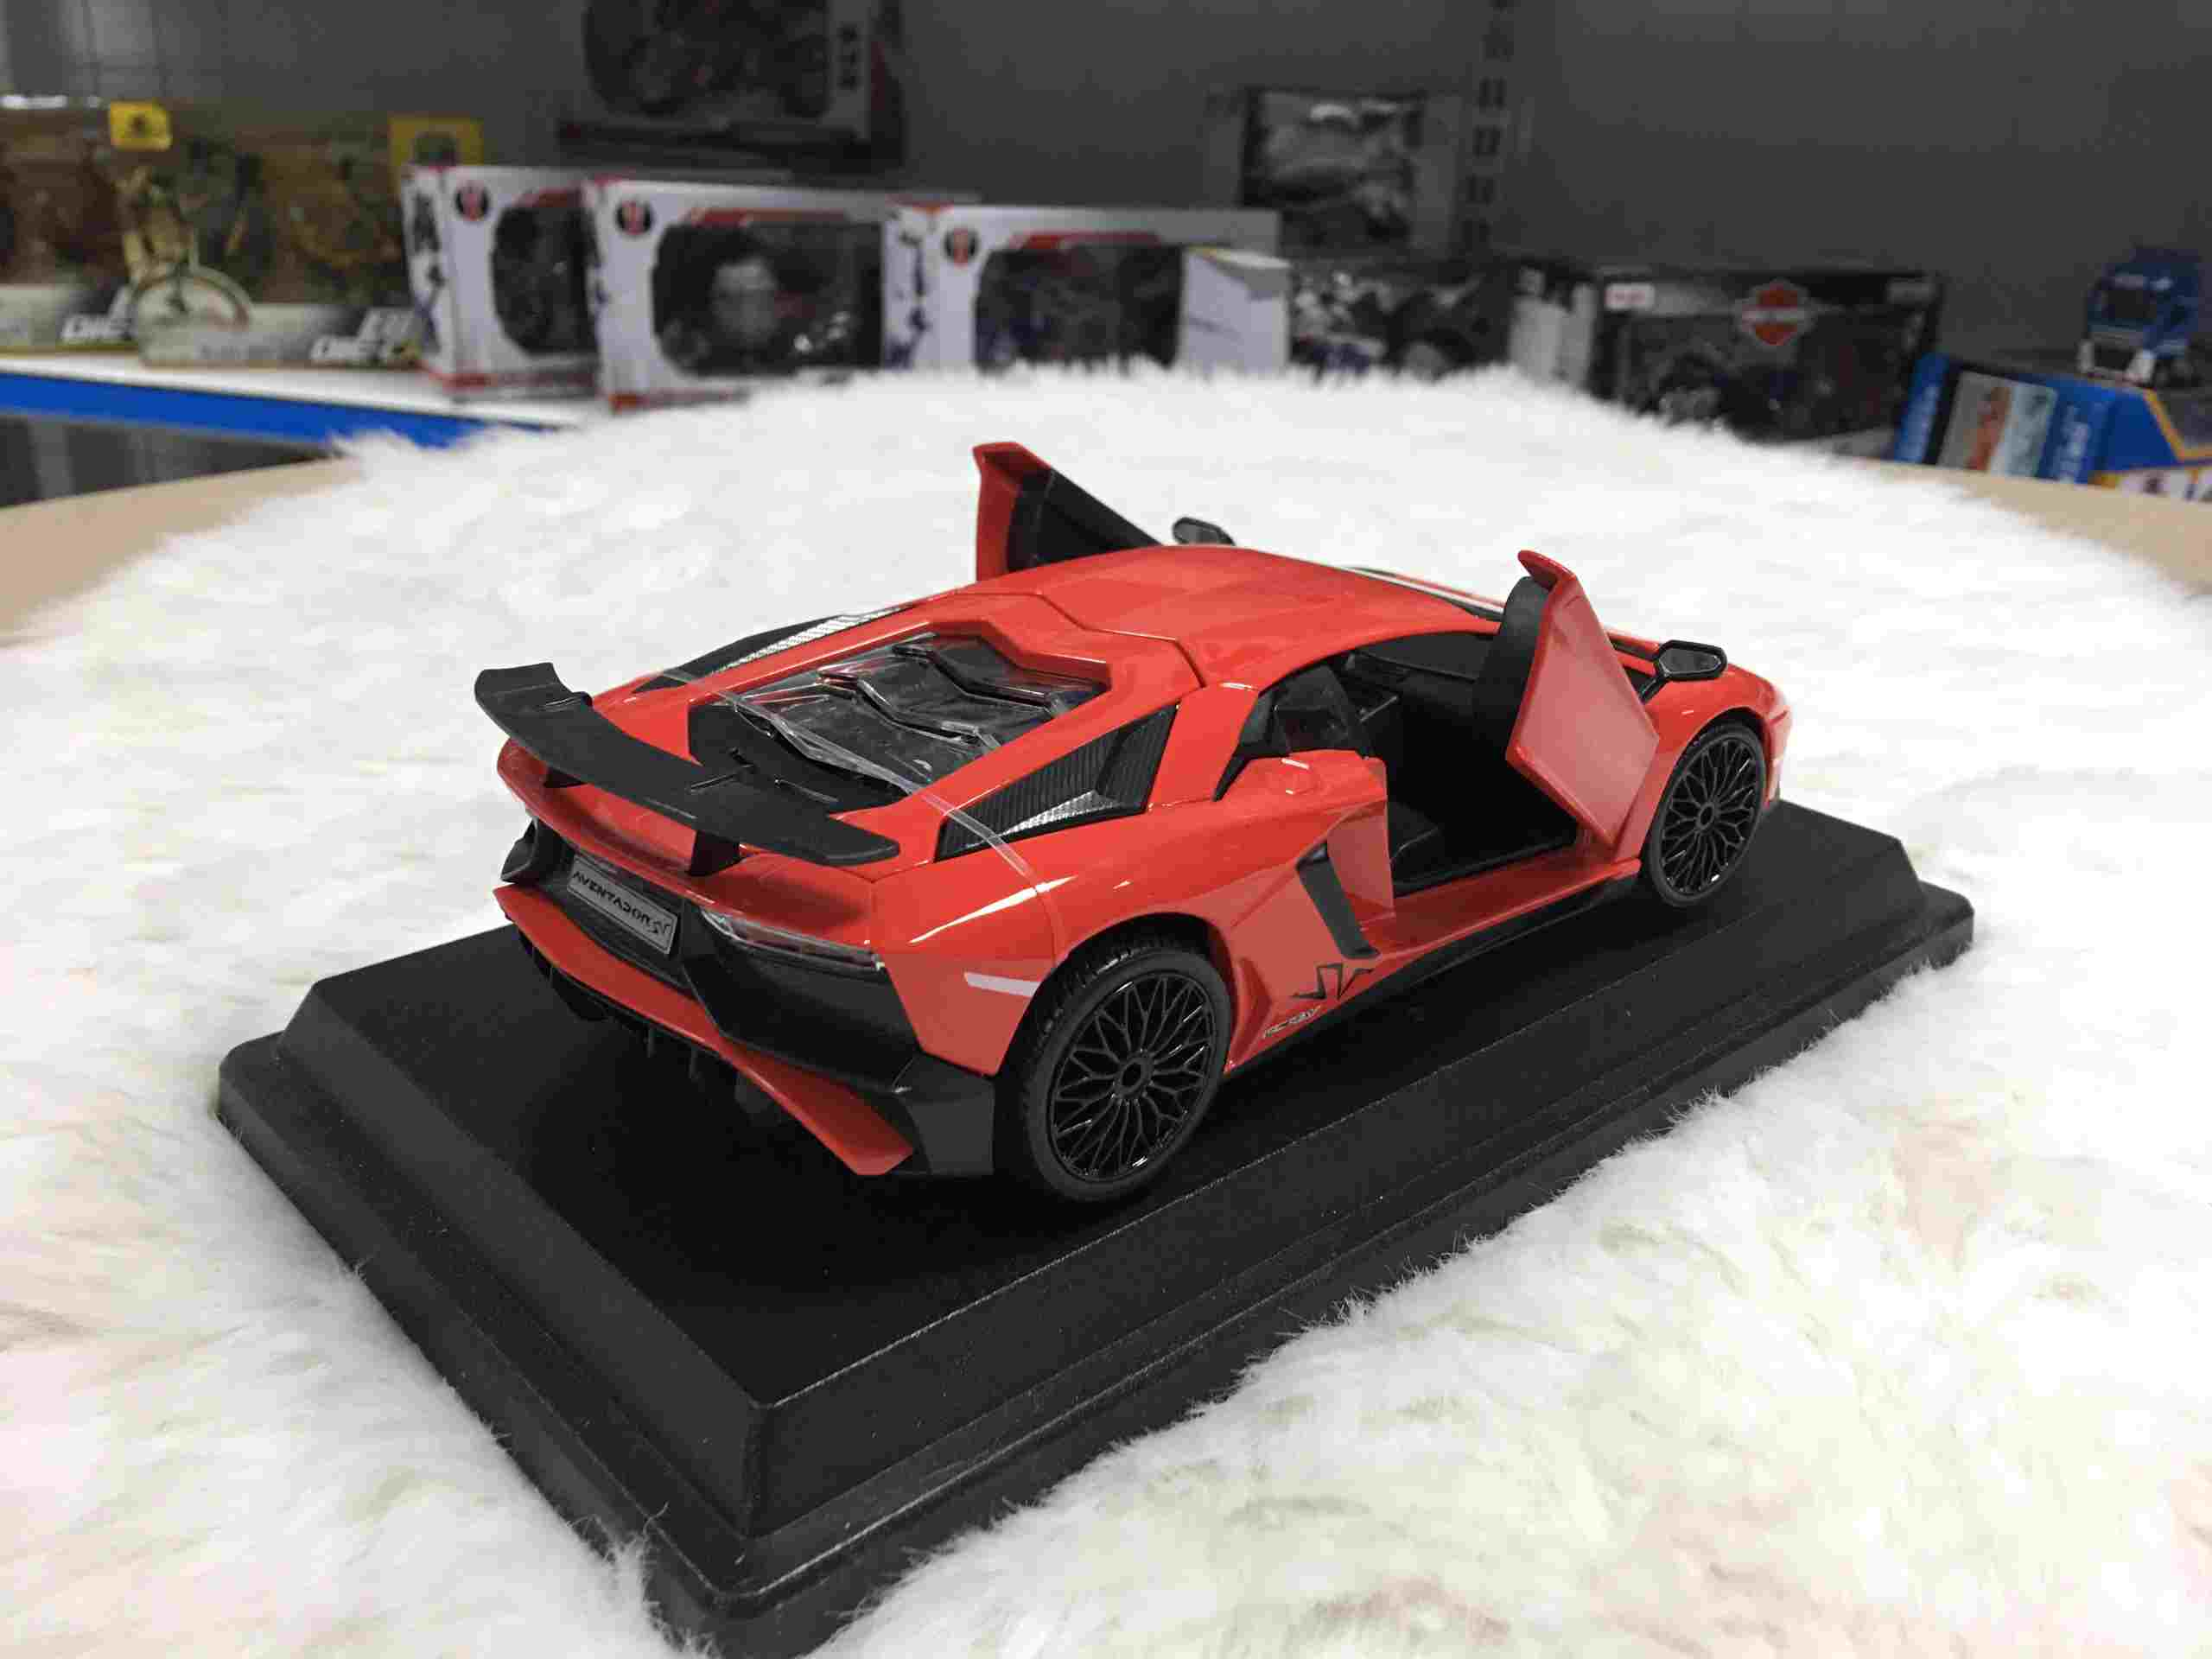 SP005062 - [Burago] Lamborghini Aventador LP750-4 SV 124 [Orange]